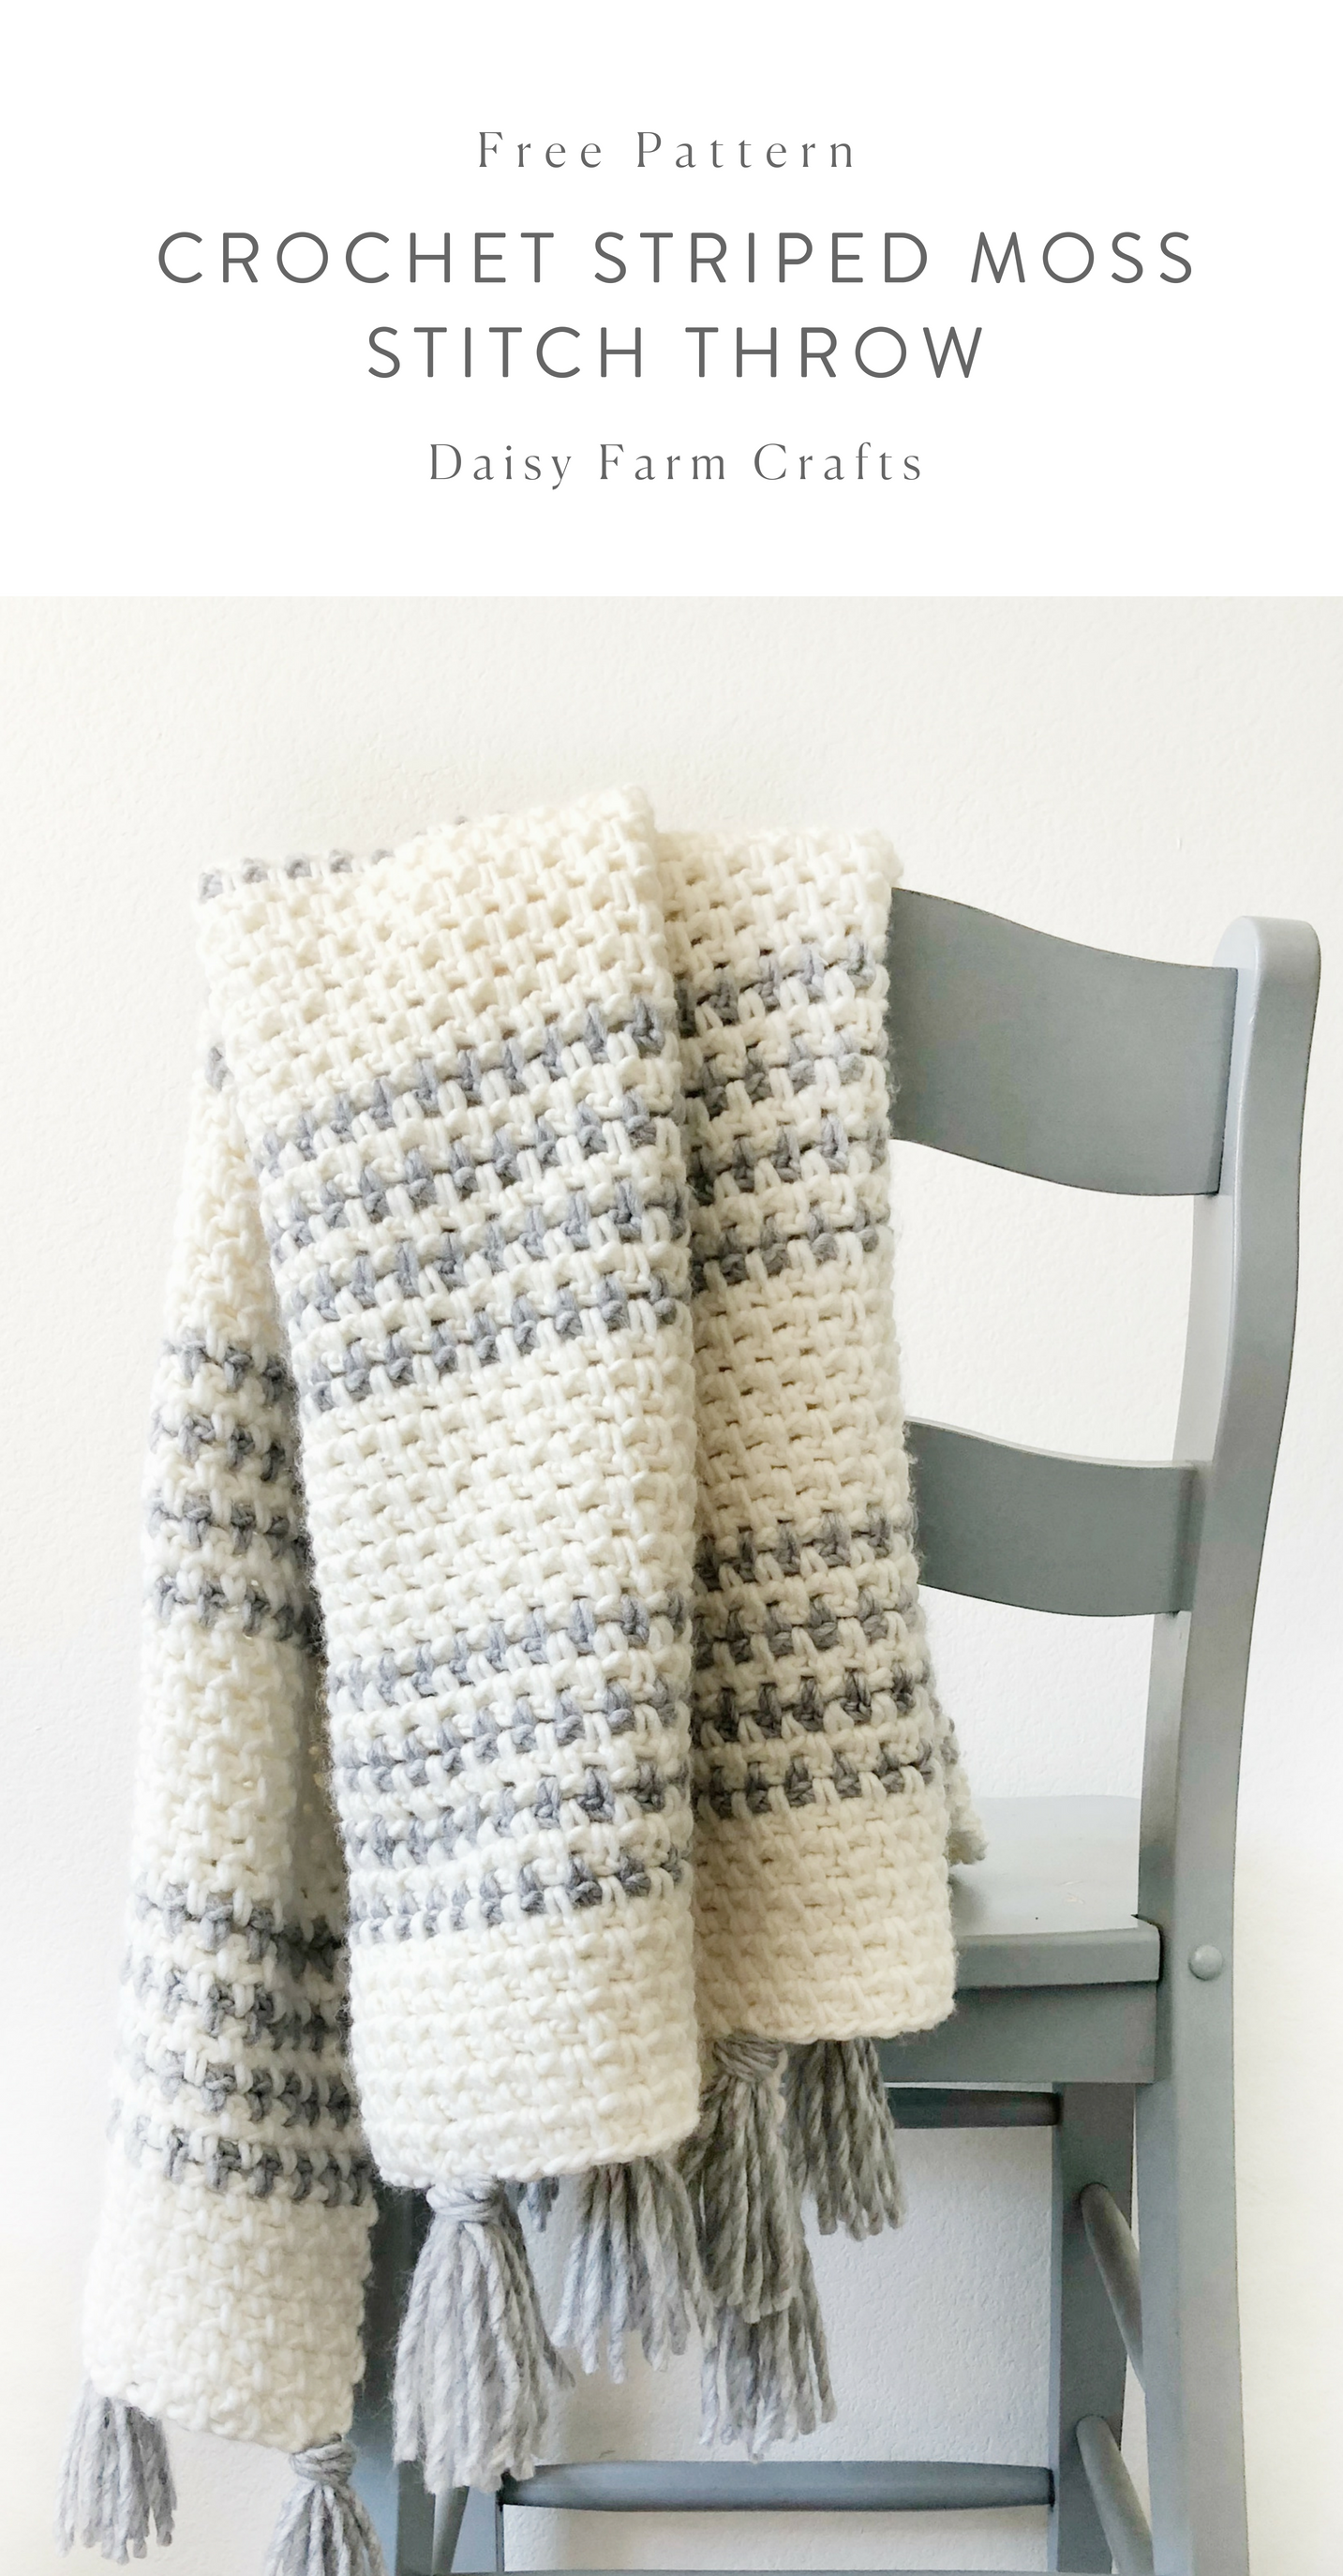 Free Pattern - Crochet Striped Moss Stitch Throw #crochet | Mantas ...